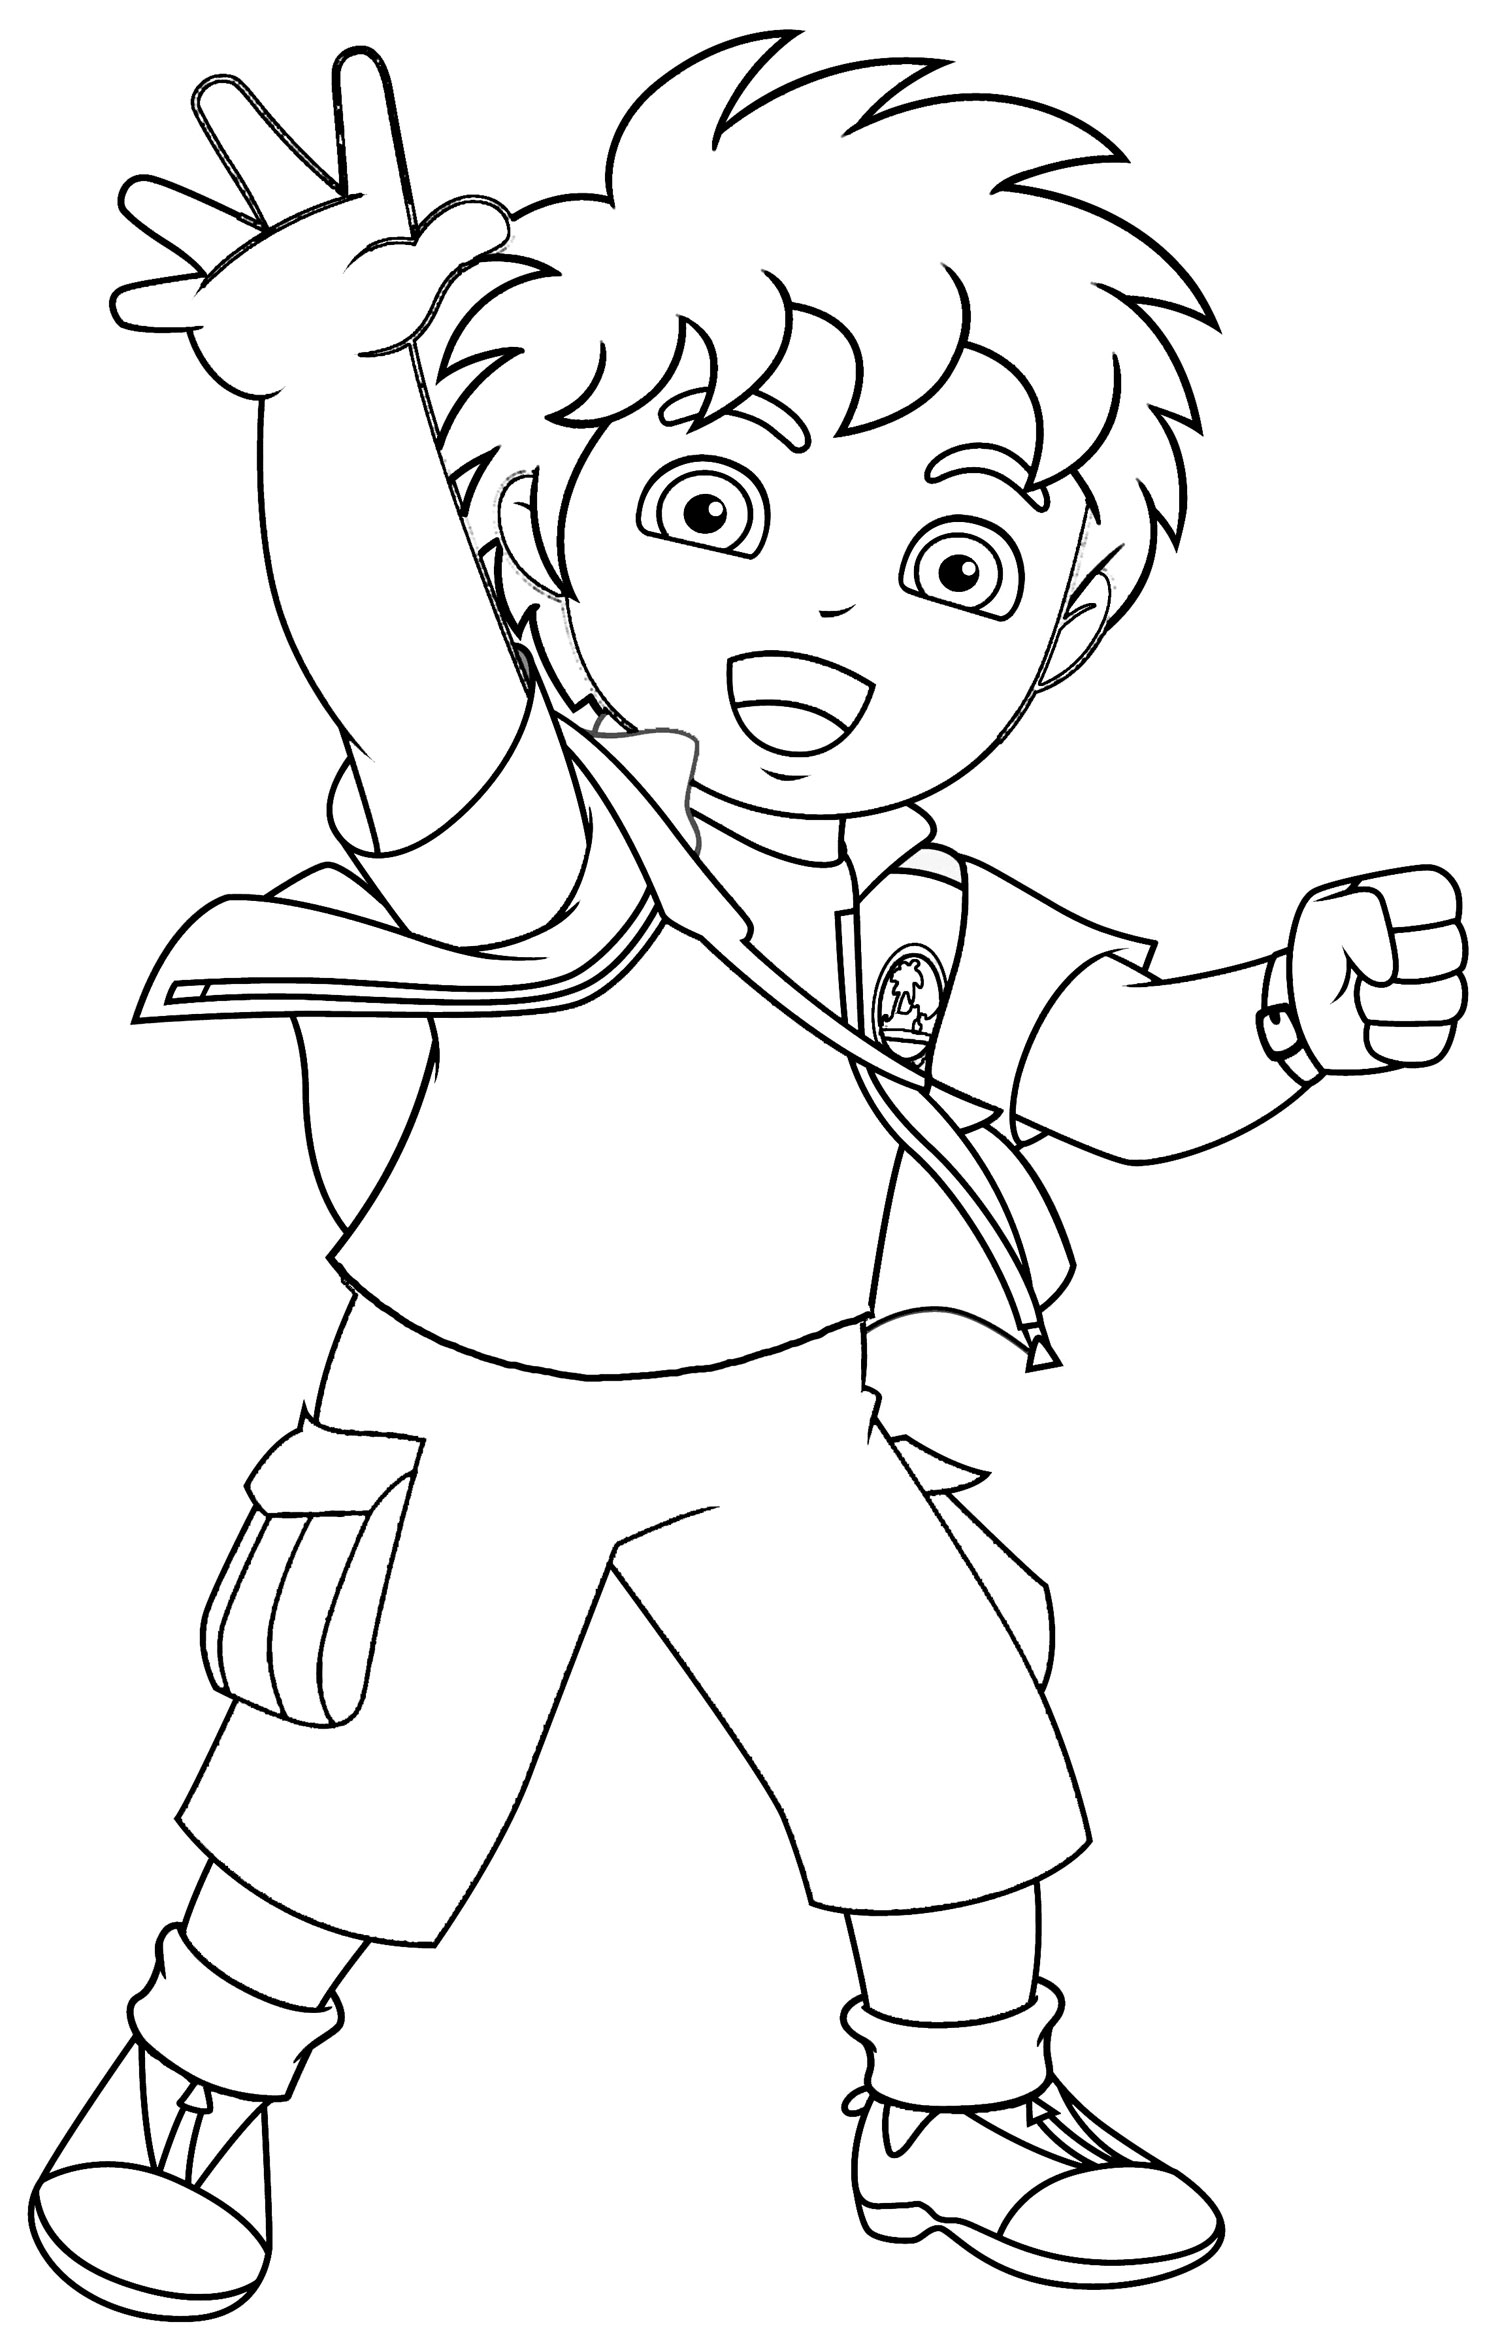 Free printable diego coloring pages for kids for Coloring pages